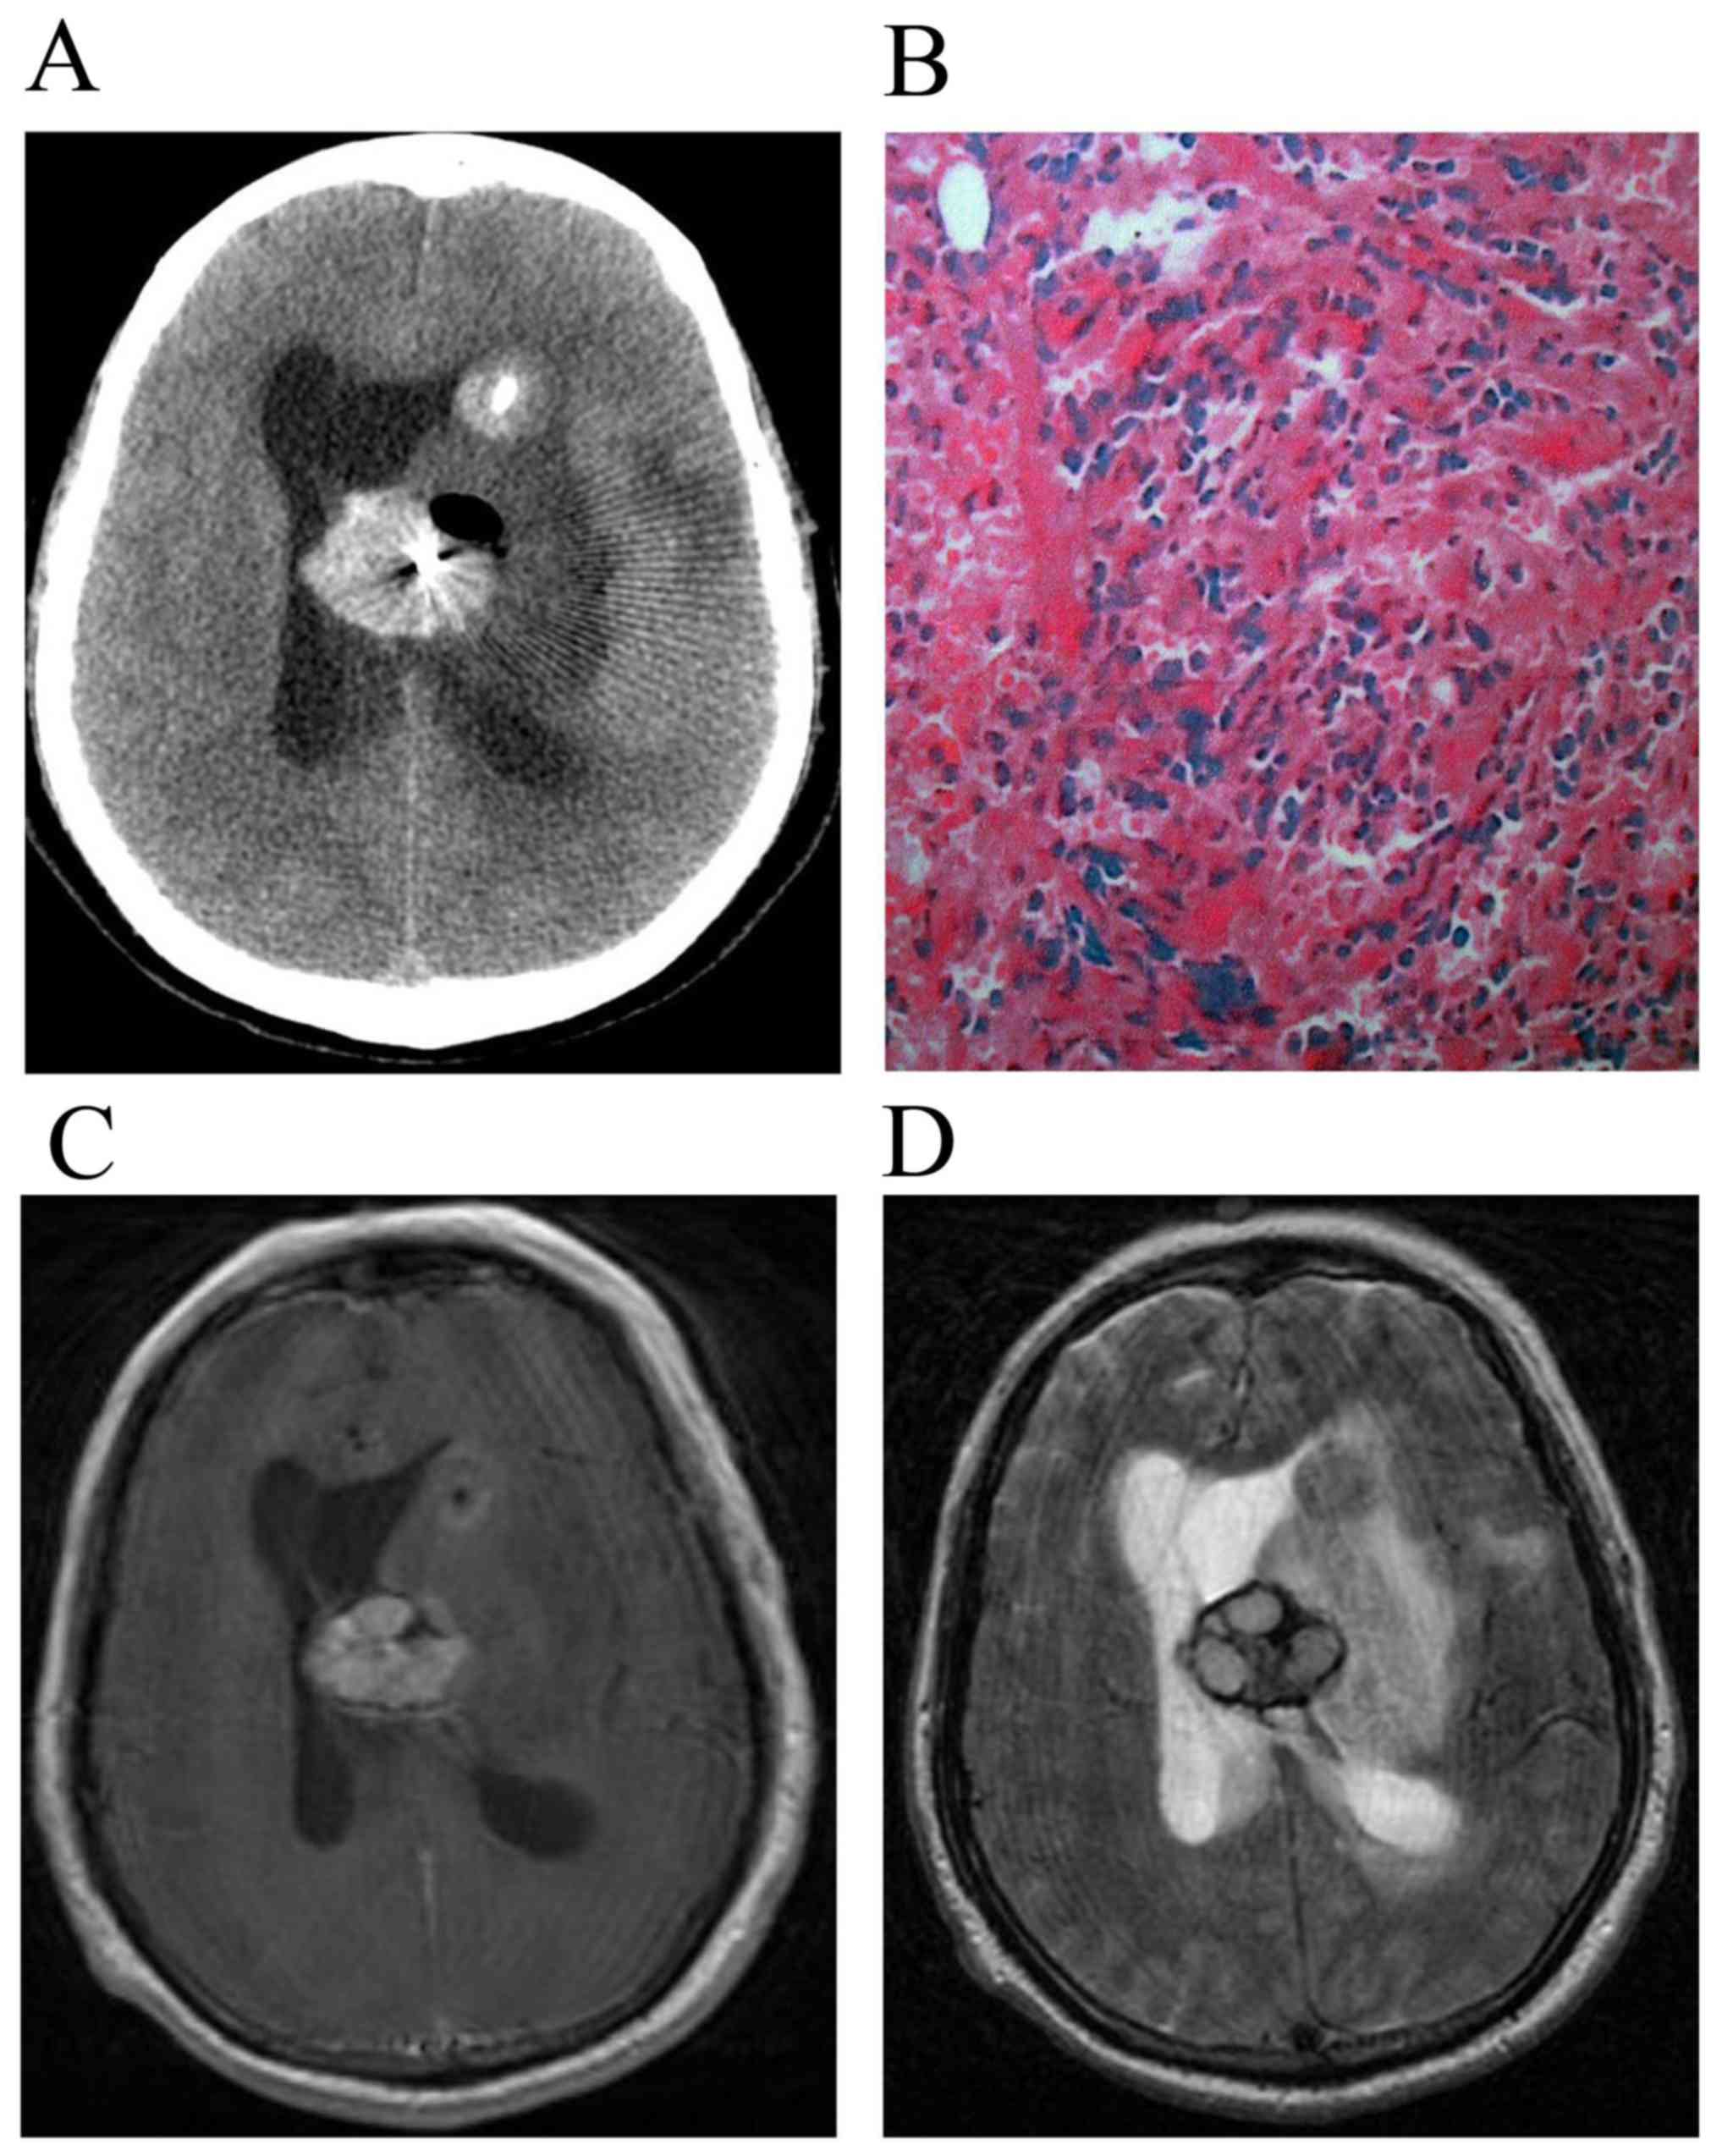 Lesions of the central nervous system in leukemia: Pathological and